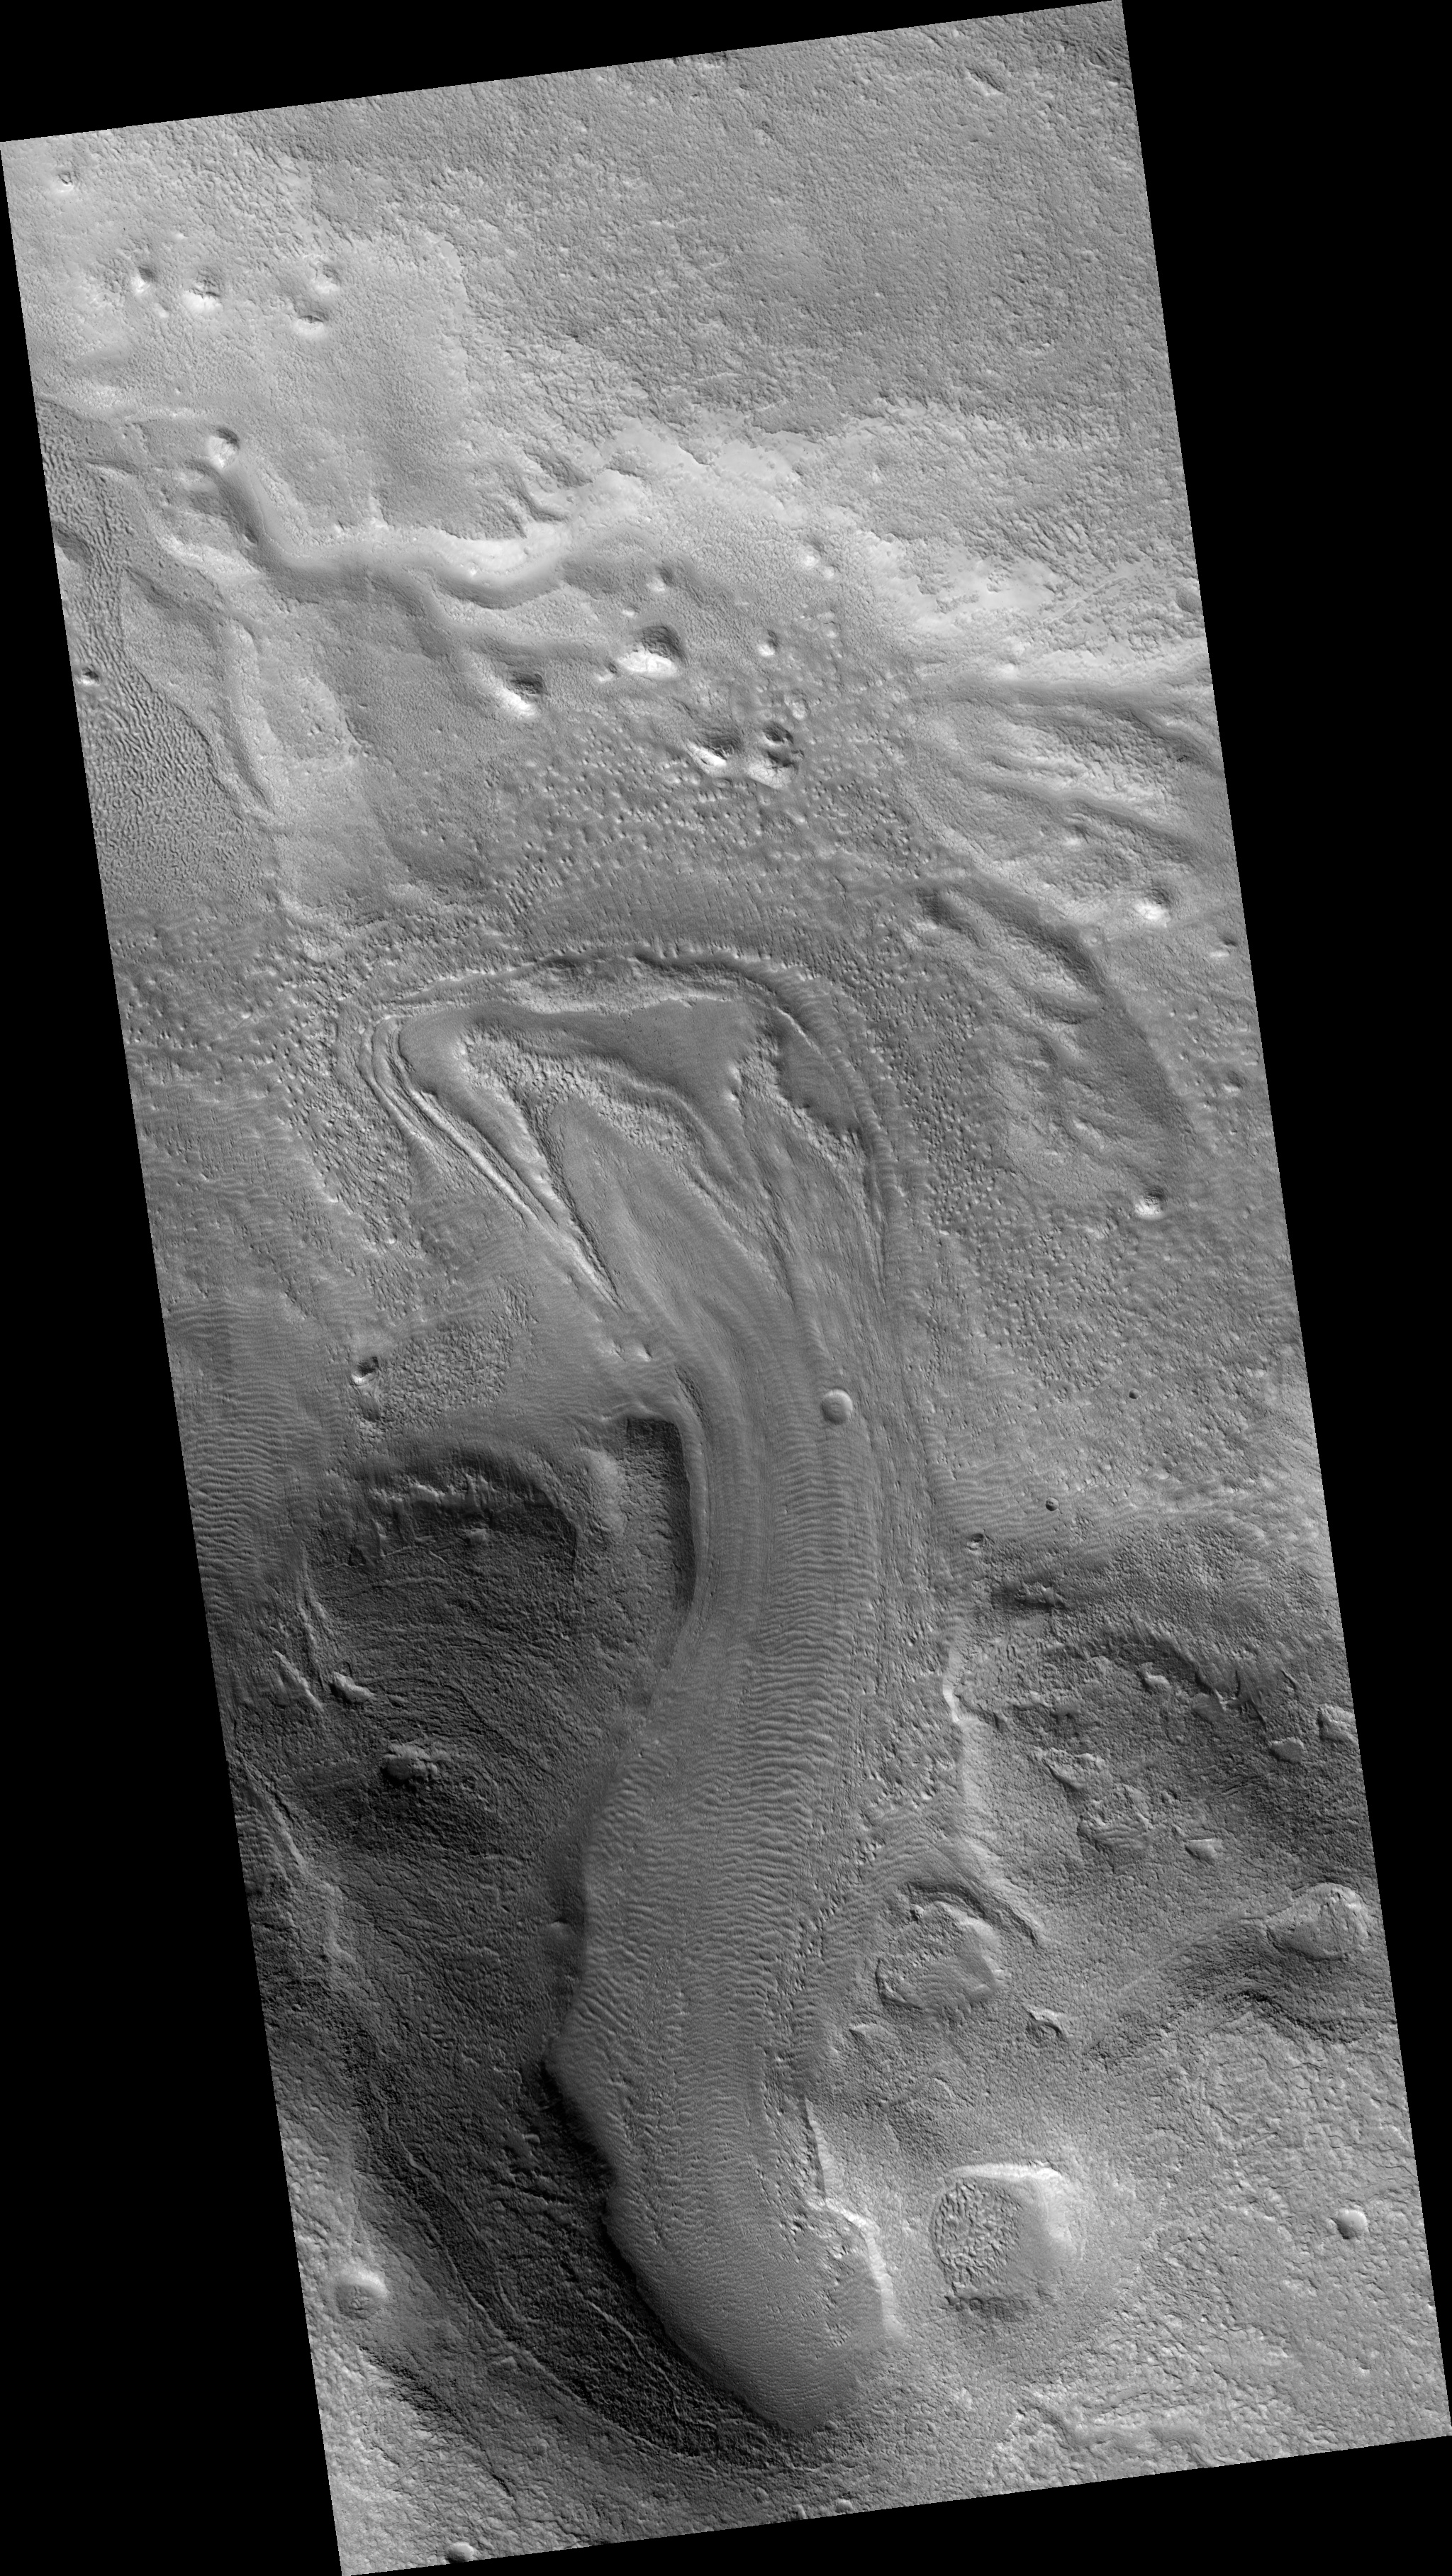 hirise multiple curved ridges at end of valley in protonilus